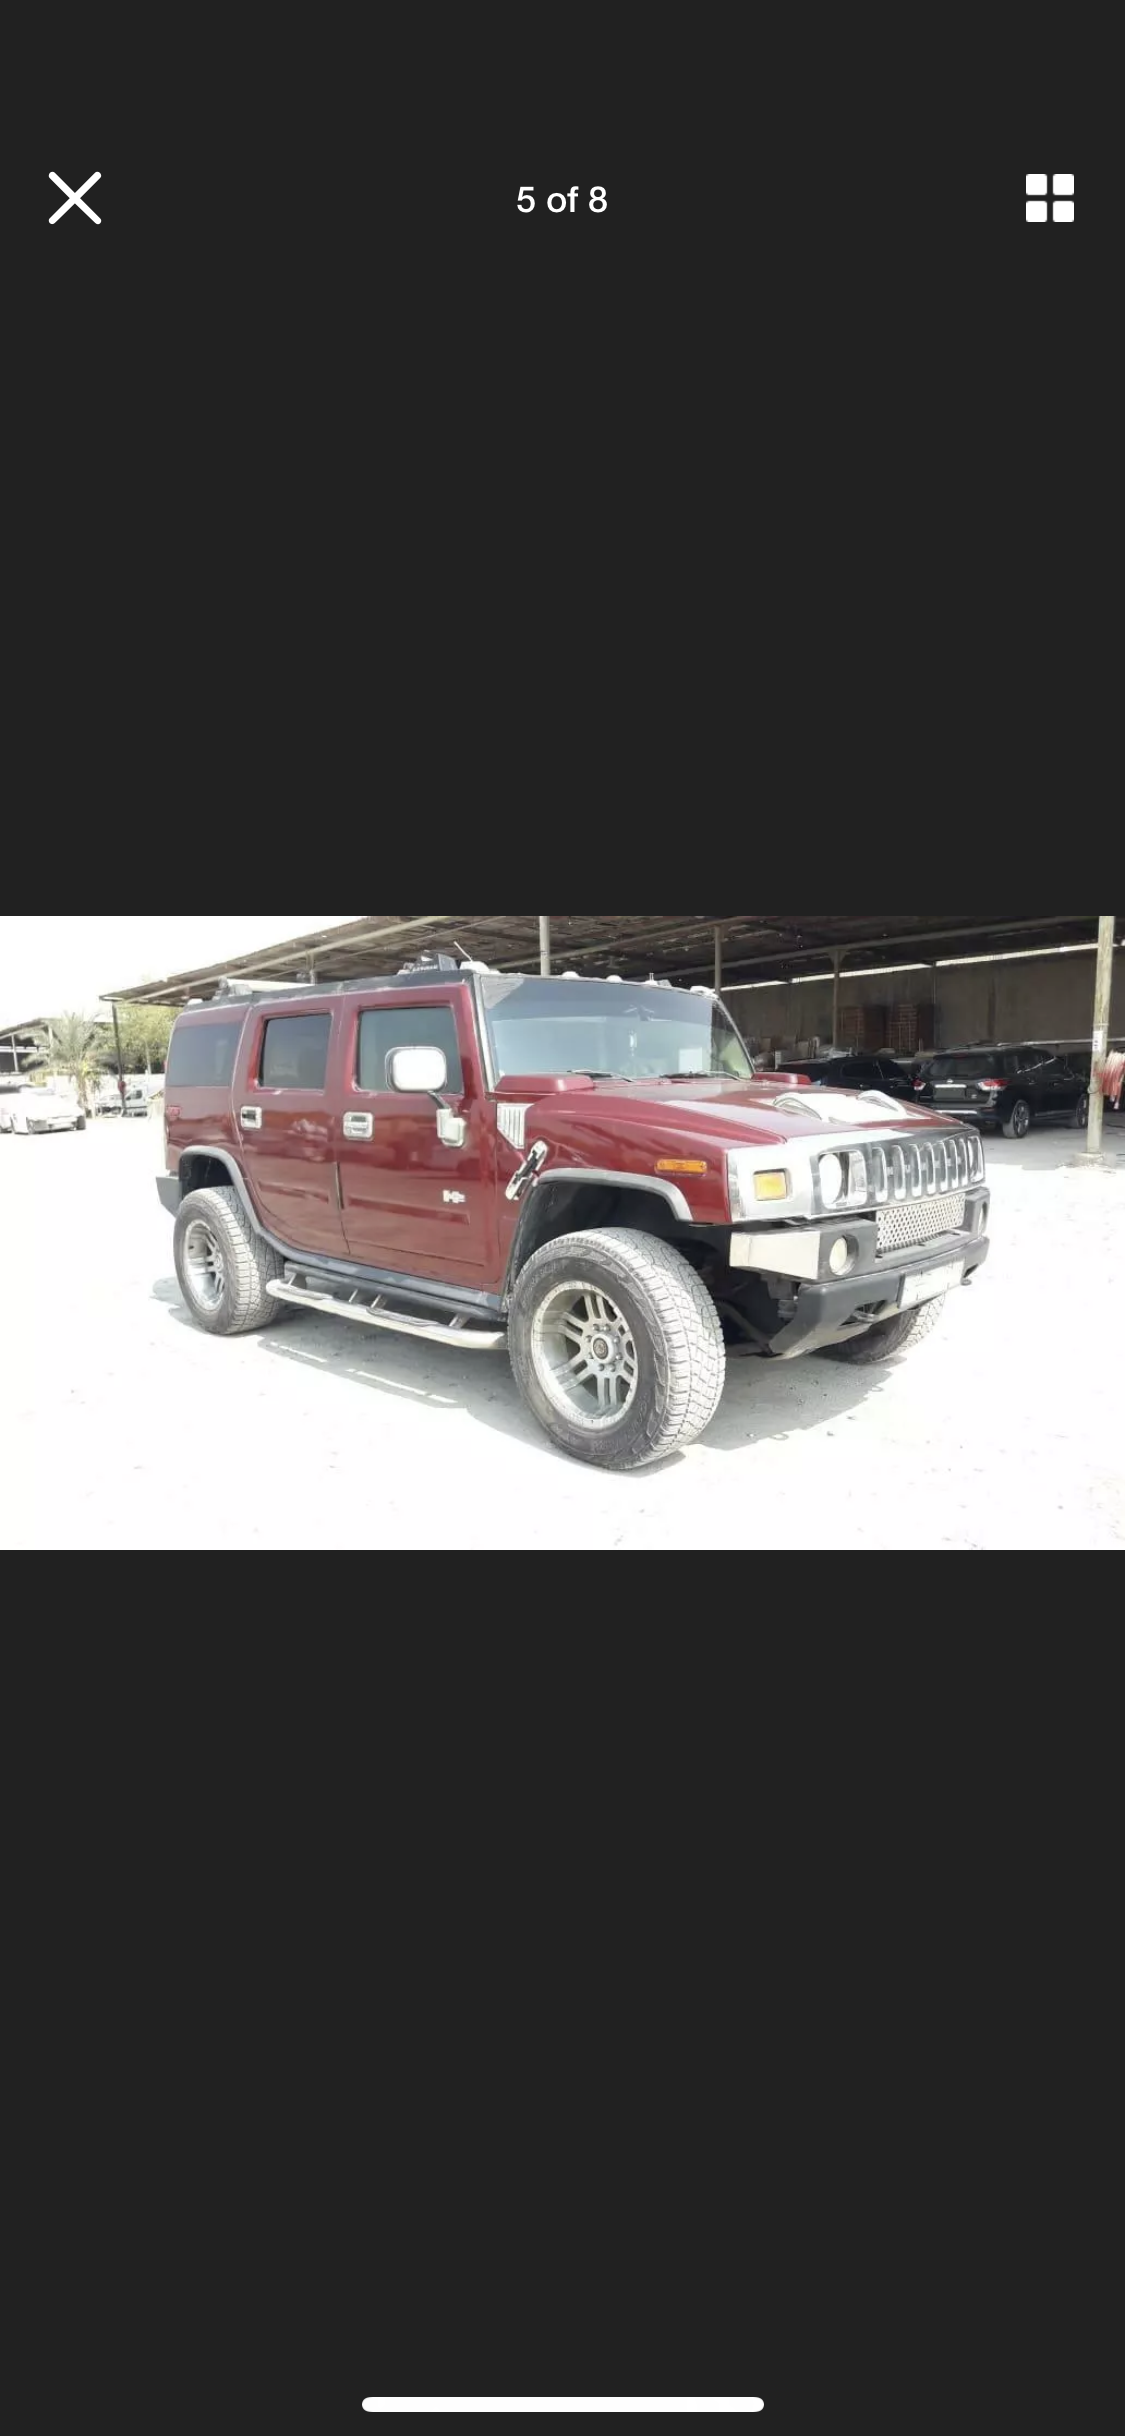 2003 HUMMER H2 6.0 LEFT HAND DRIVE LHD FRESH IMPORT AMERICAN For Sale (picture 2 of 6)